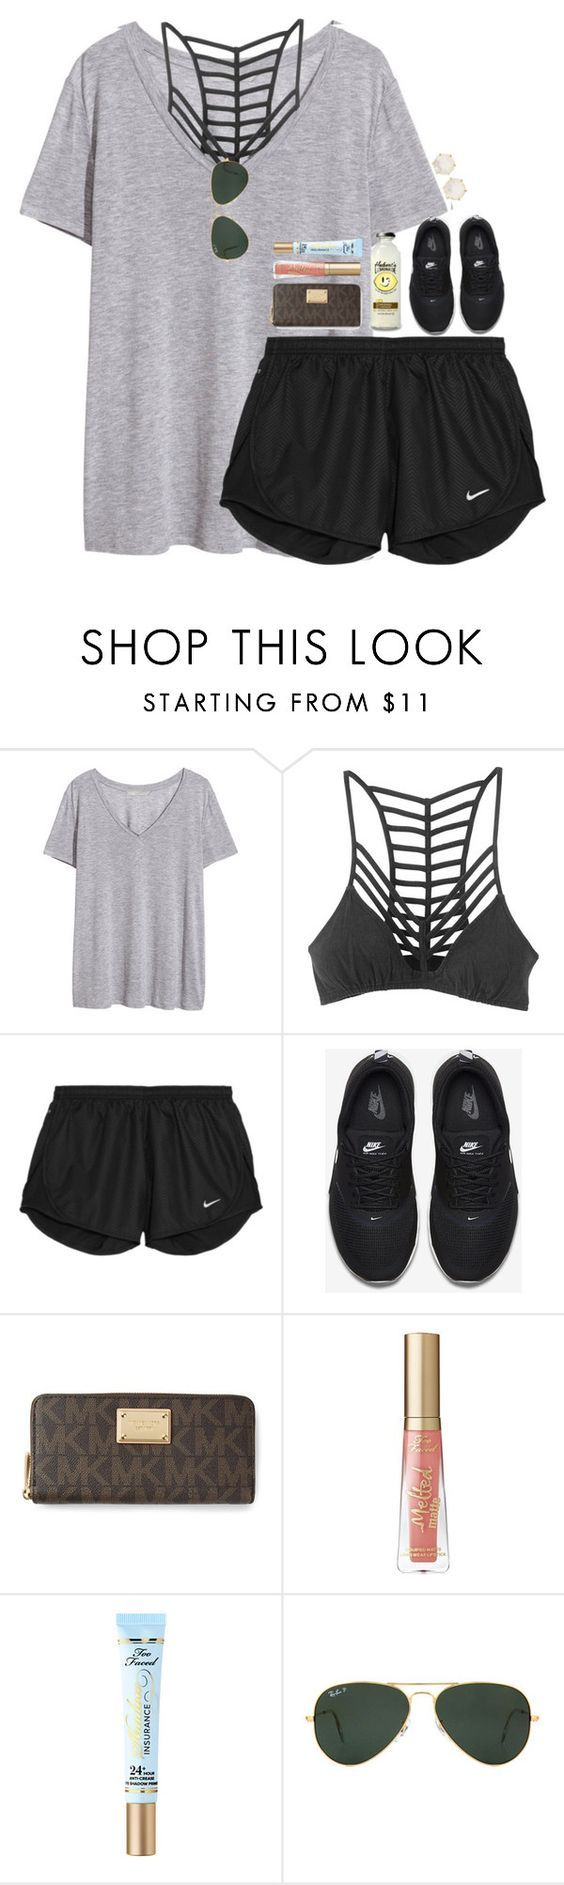 #casual #outfit #summer #running #errands #outfit #going #shopping #outfit #summer